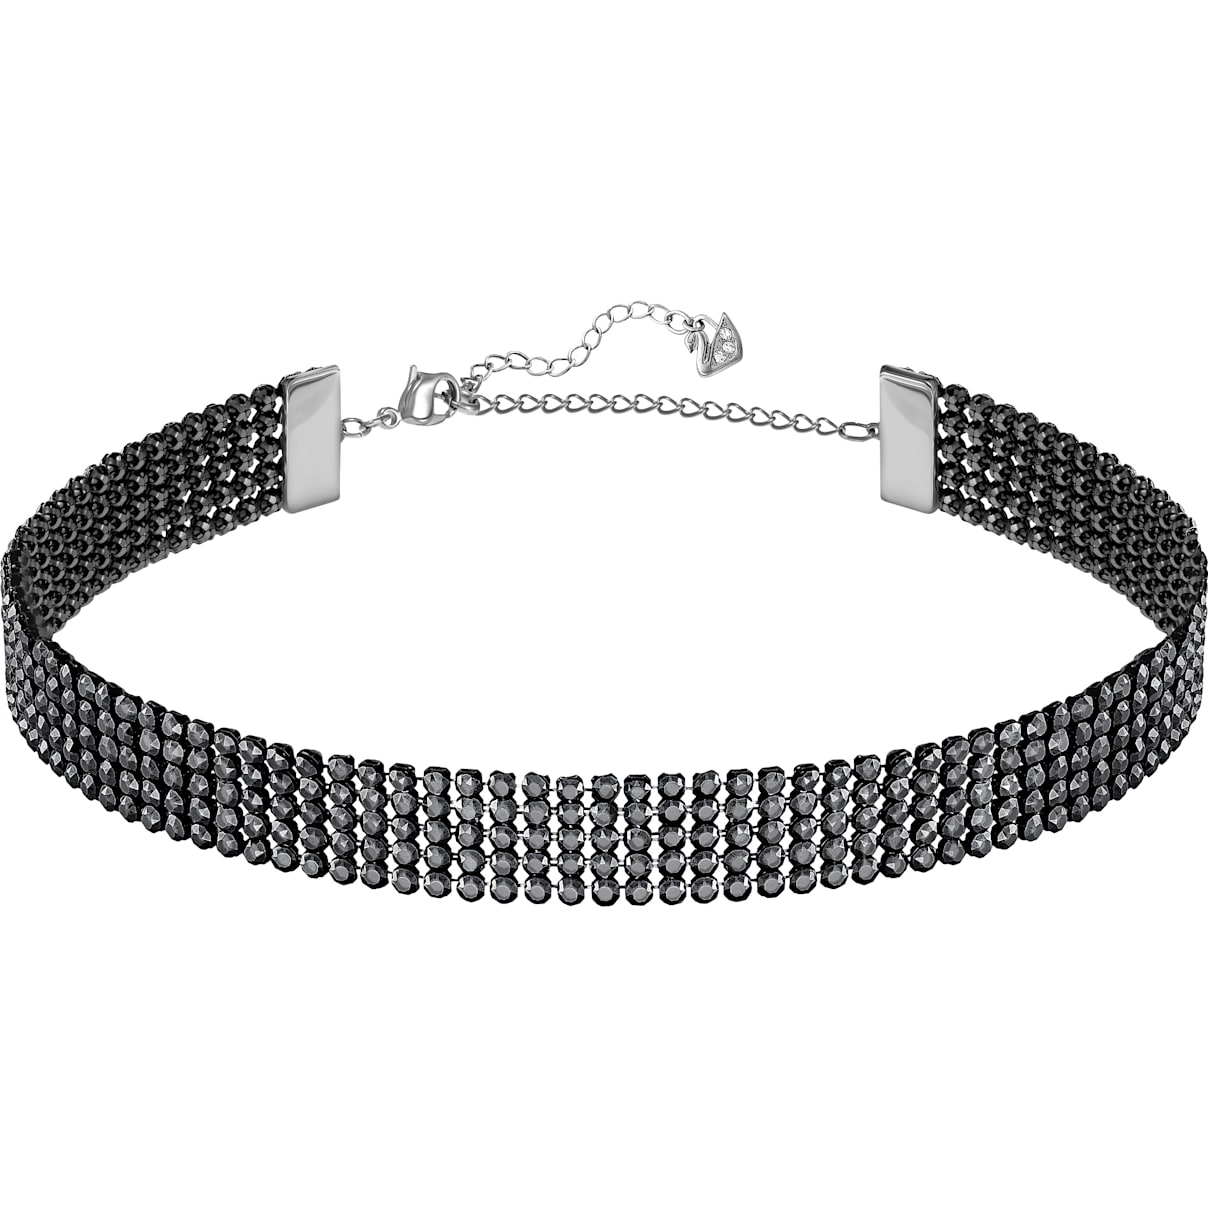 Swarovski Fit Necklace, Black, Ruthenium plated